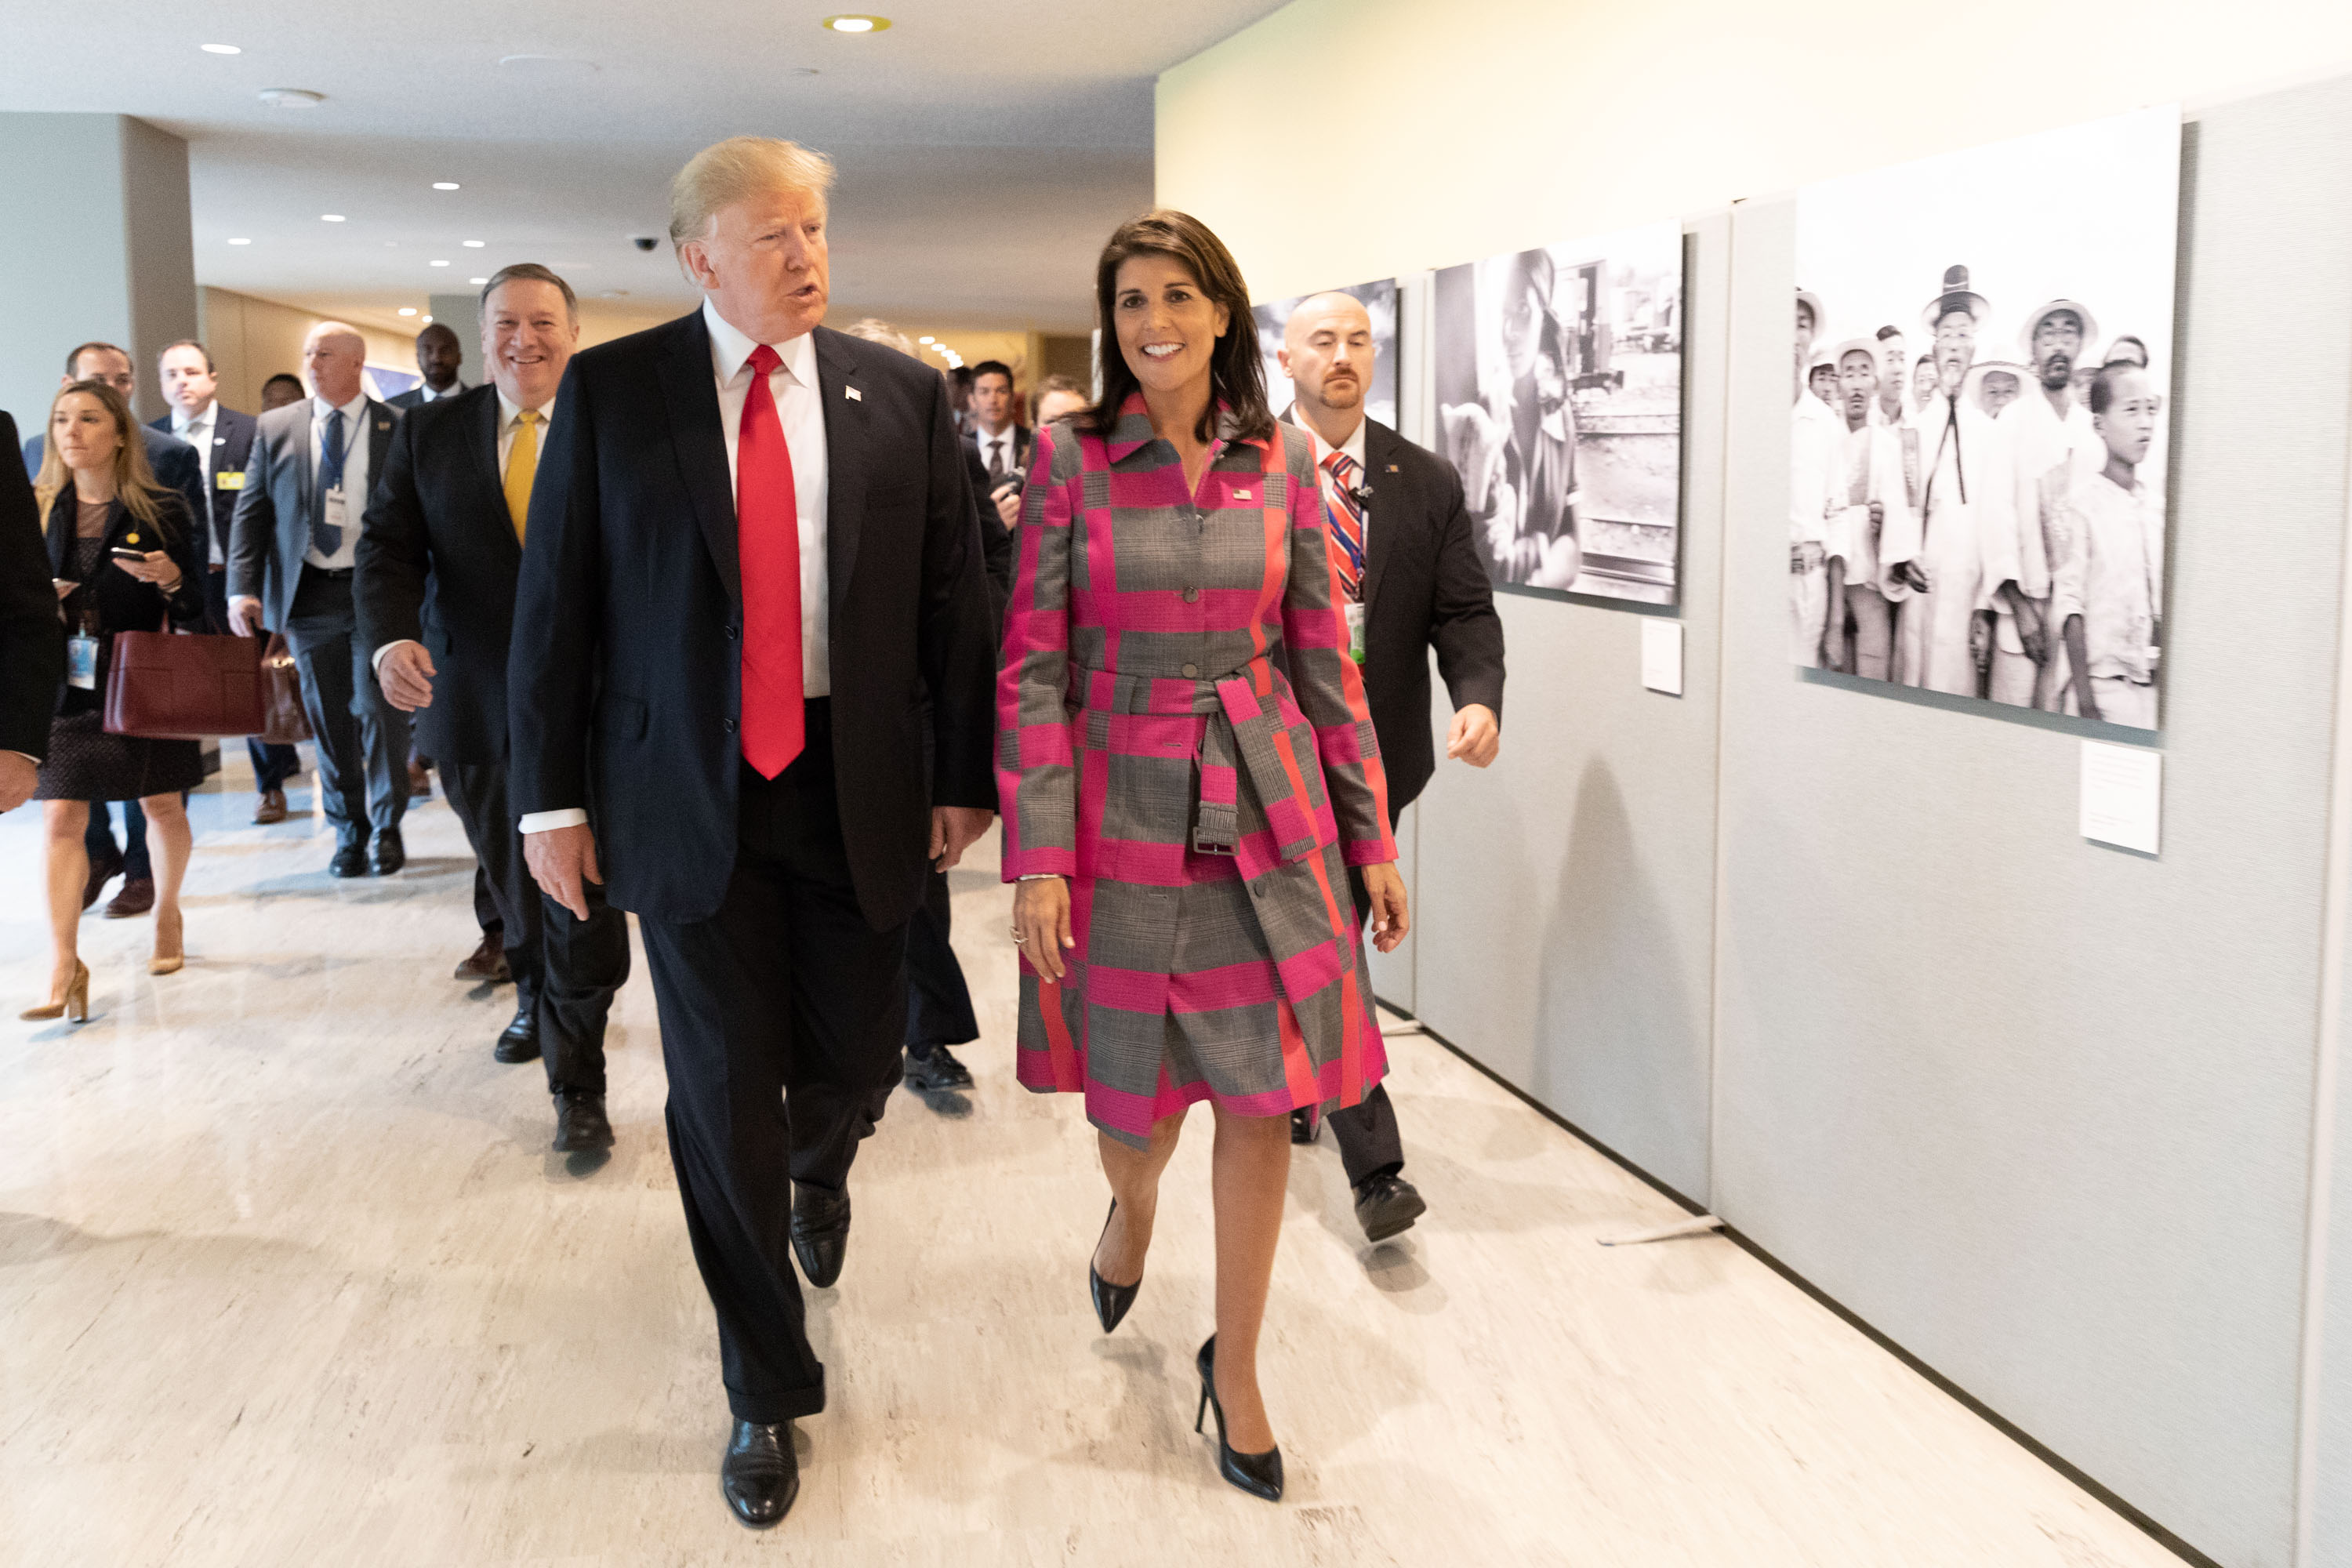 President Donald J. Trump and UN Ambassador Nikki Haley arrive Monday, Sept. 24, 2018, to the UN Headquarters in New York City, where they participated in the Global Call to Action on the World Drug Problem. (Official White House Photo by Shealah Craighead)